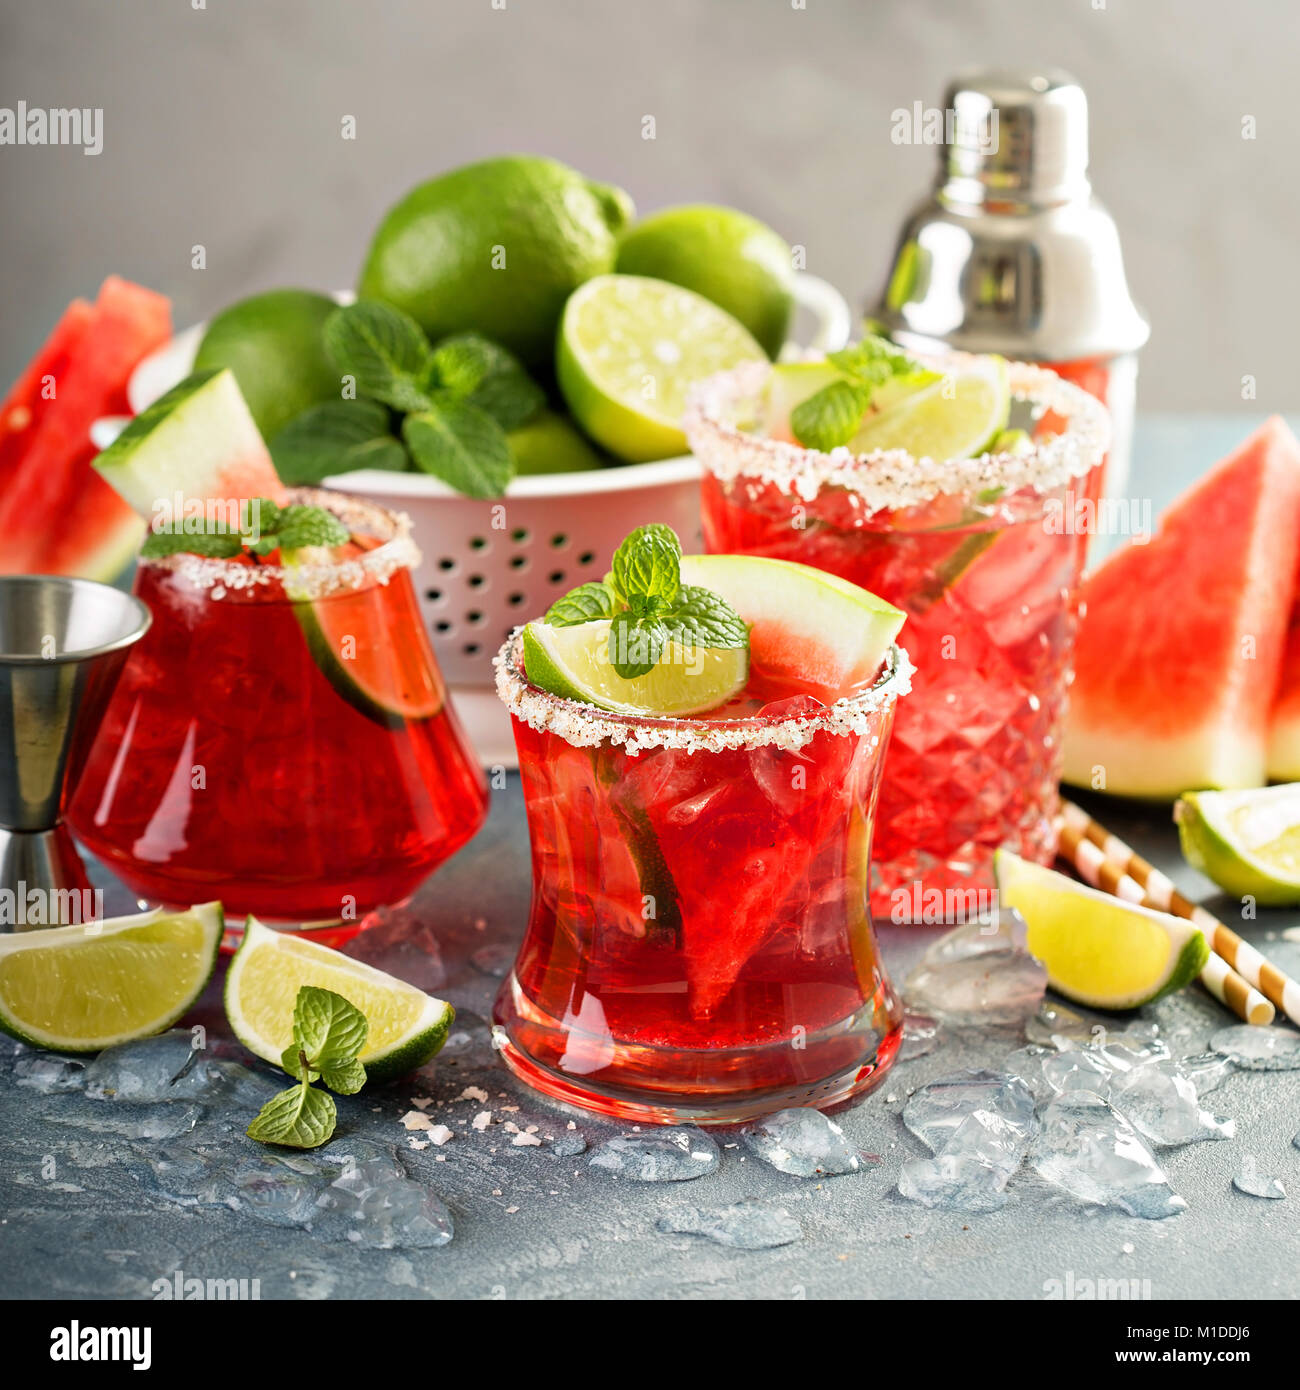 Watermelon margarita with limes - Stock Image